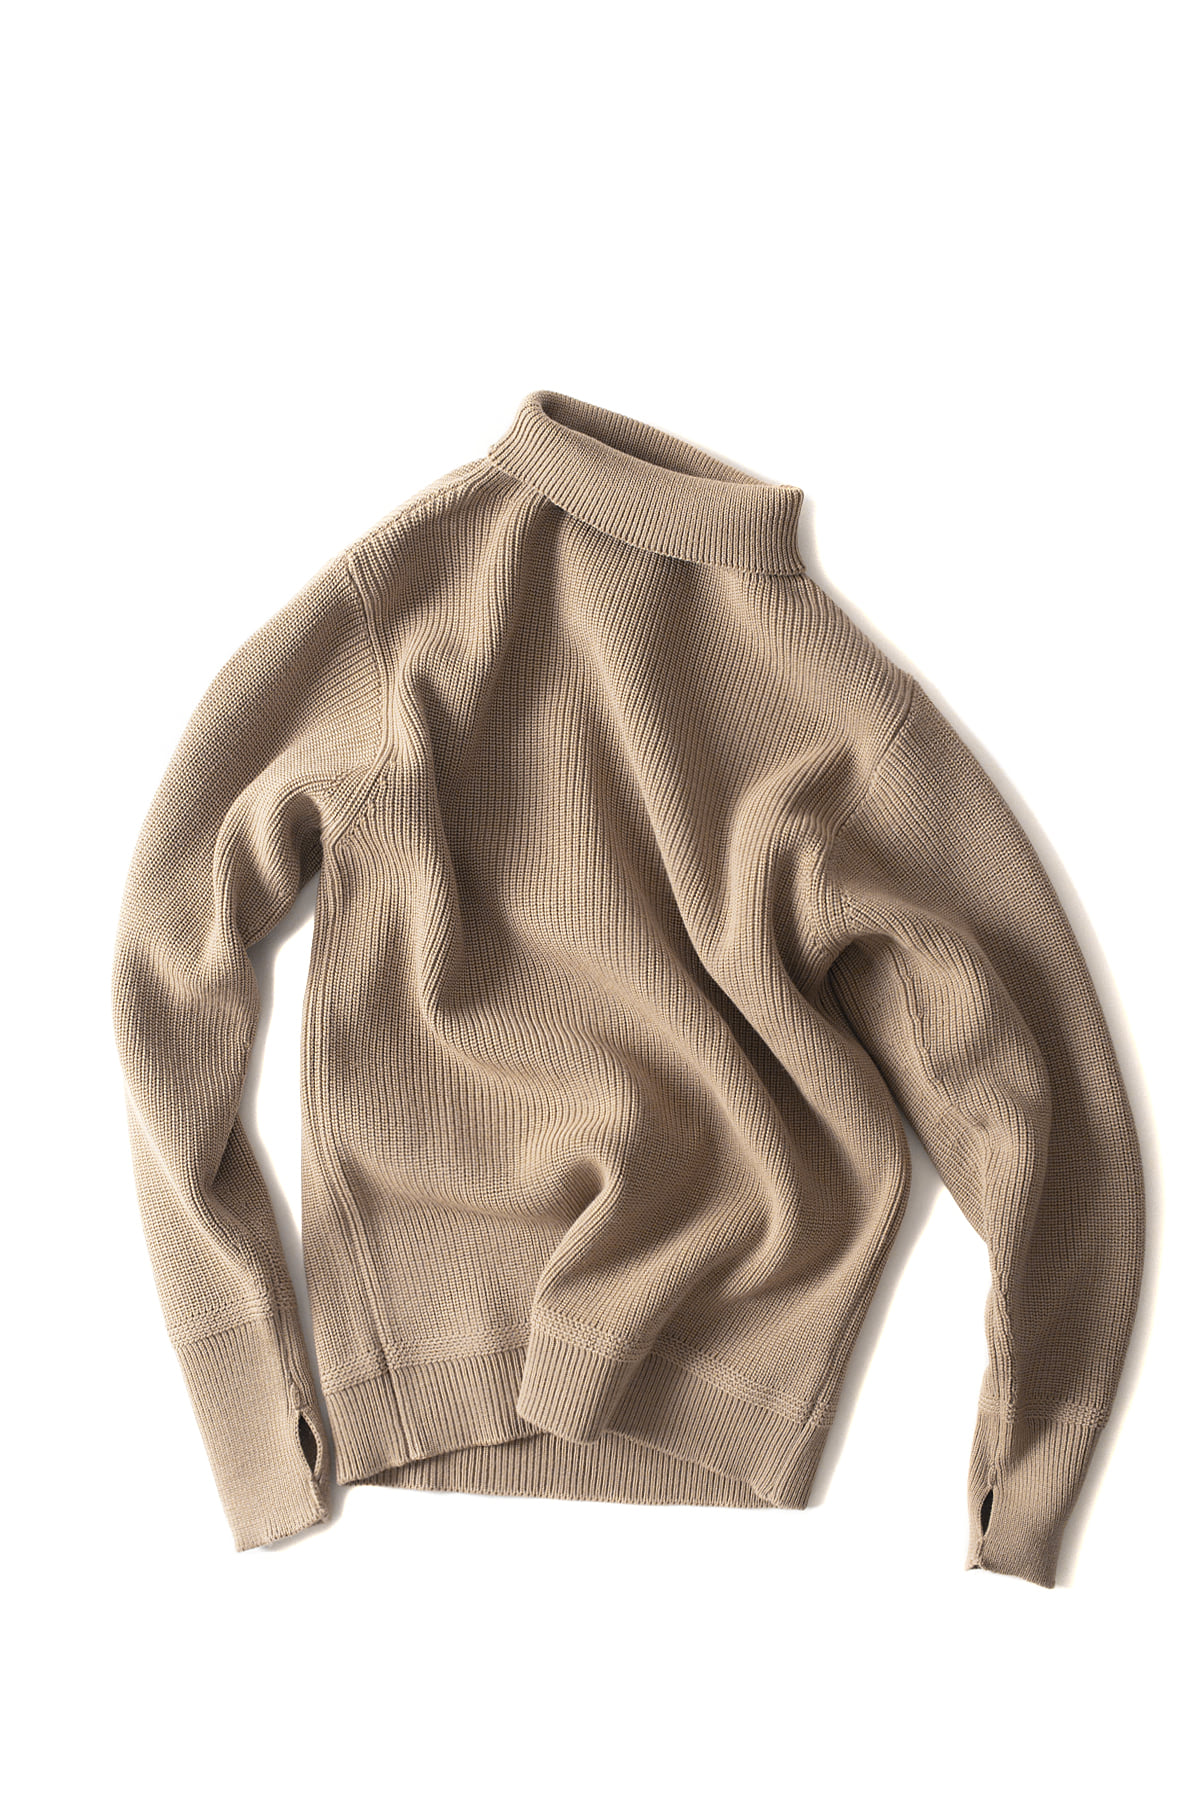 Andersen-Andersen : Sailor Turtleneck (Camel)